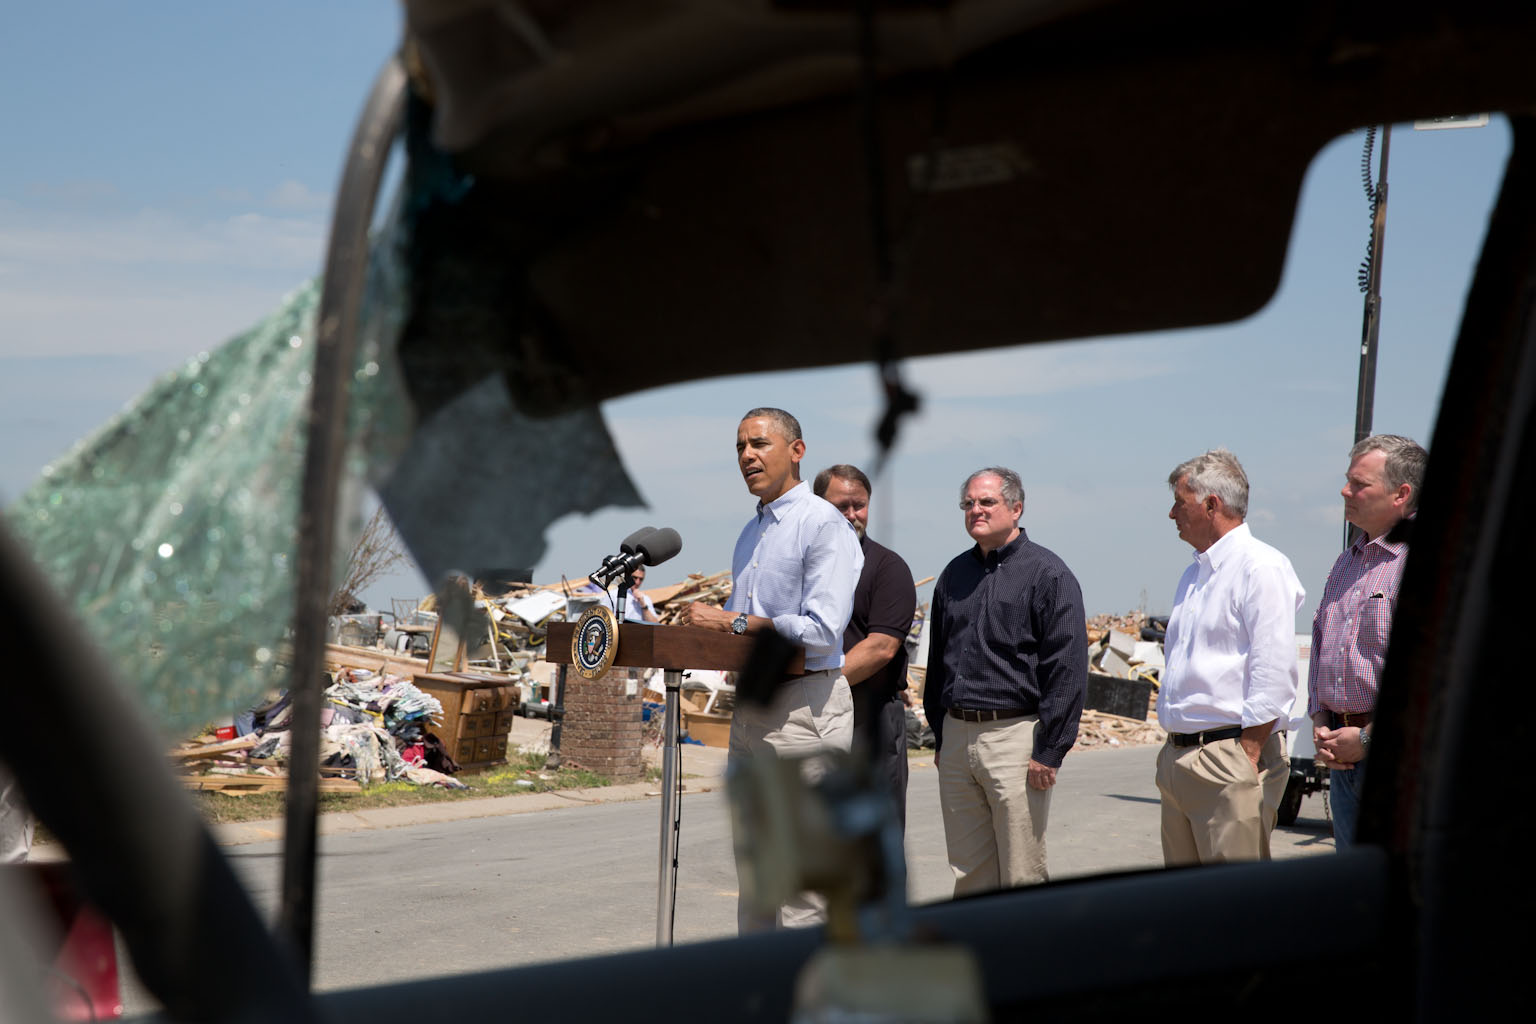 President Barack Obama delivers a statement regarding the recent tornadoes and severe storms in central Arkansas, in Vilonia, Ark., May 7, 2014.